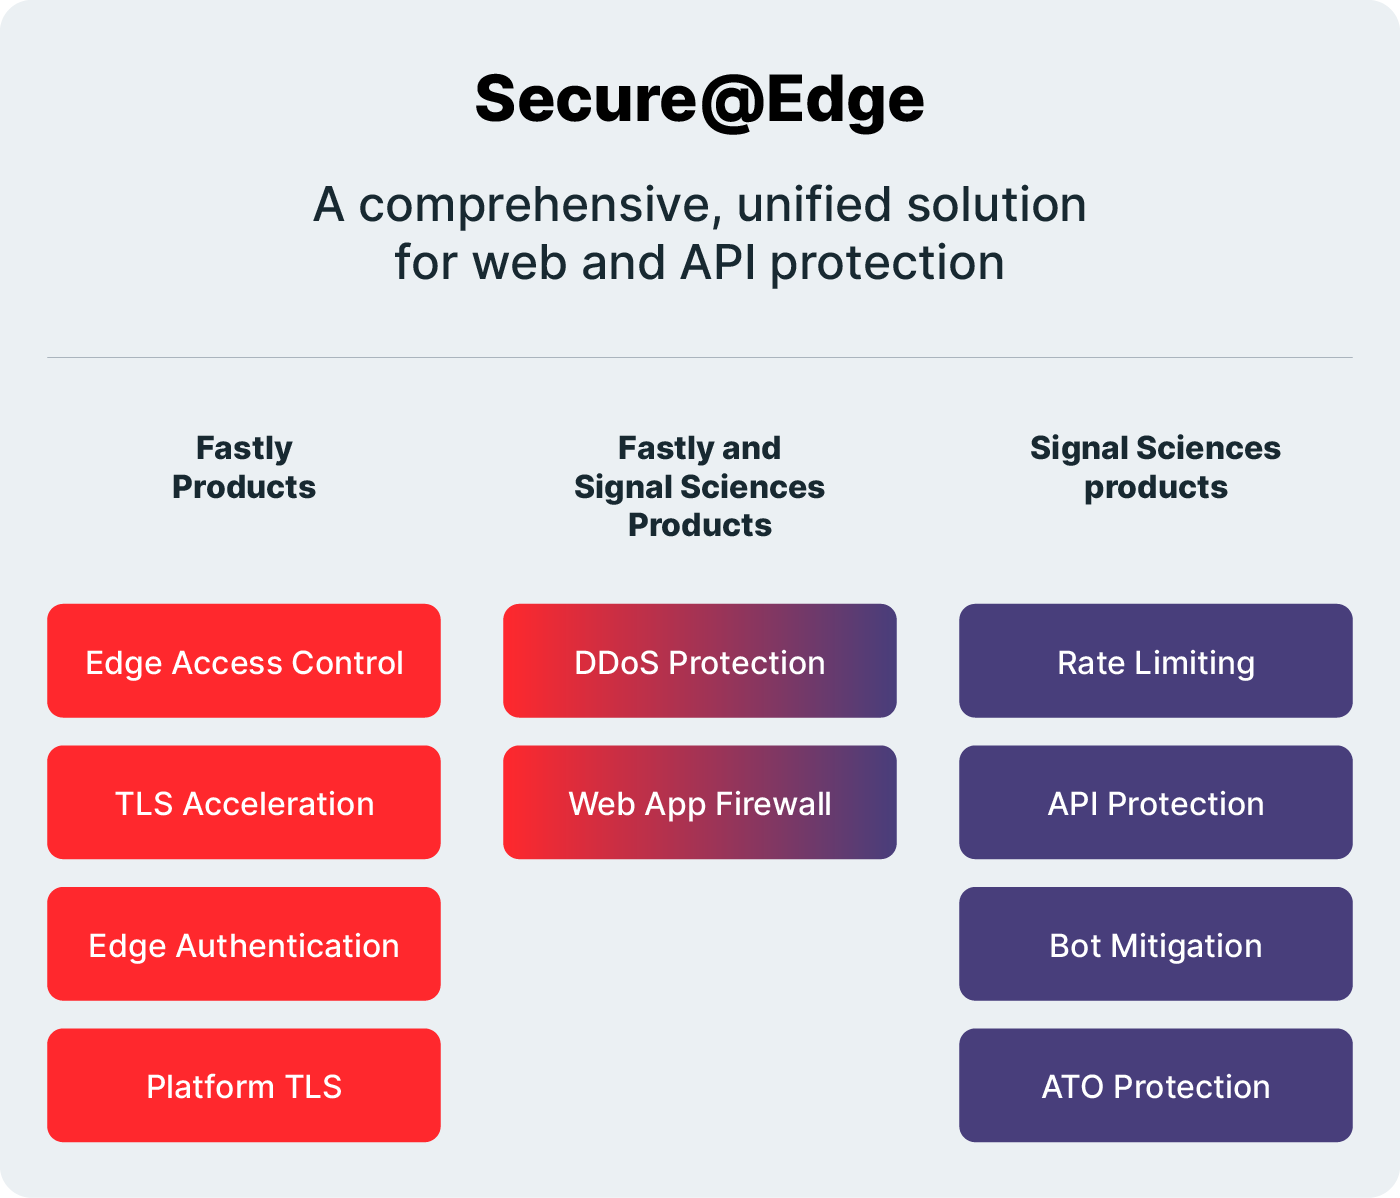 SecureEdge